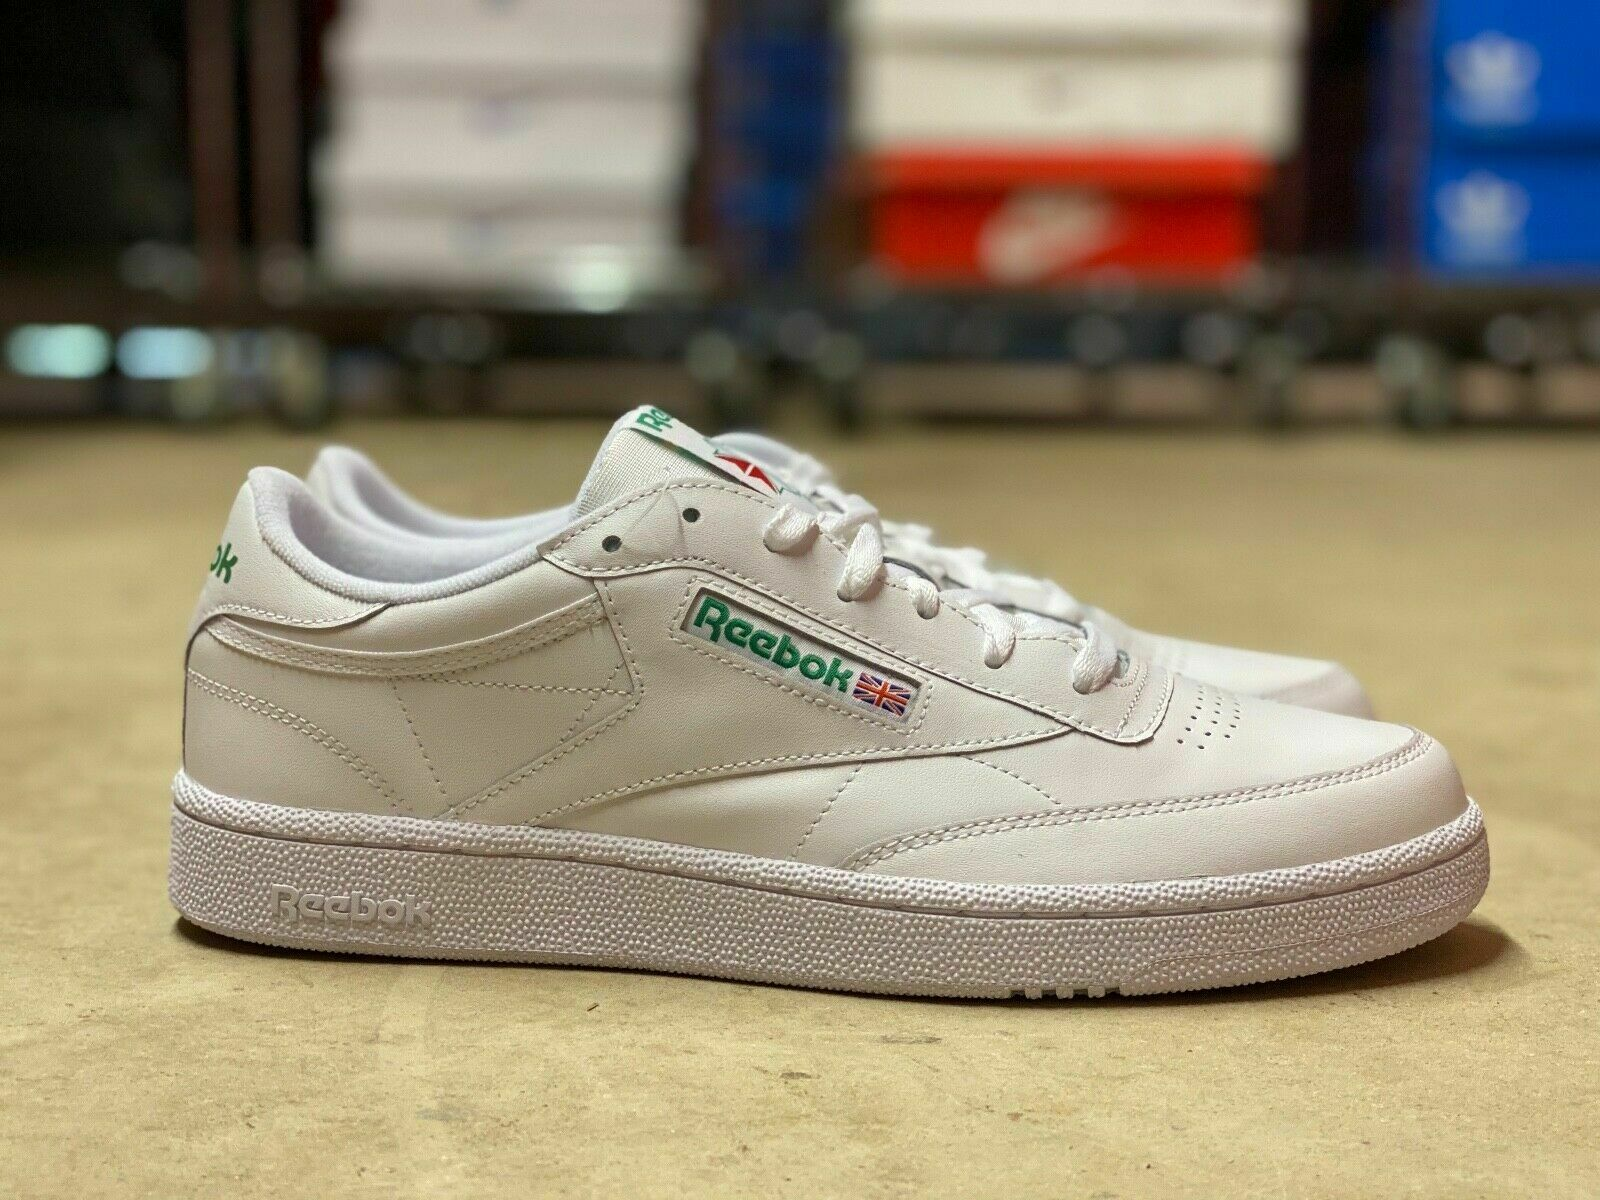 Reebok Club C 85 White Green